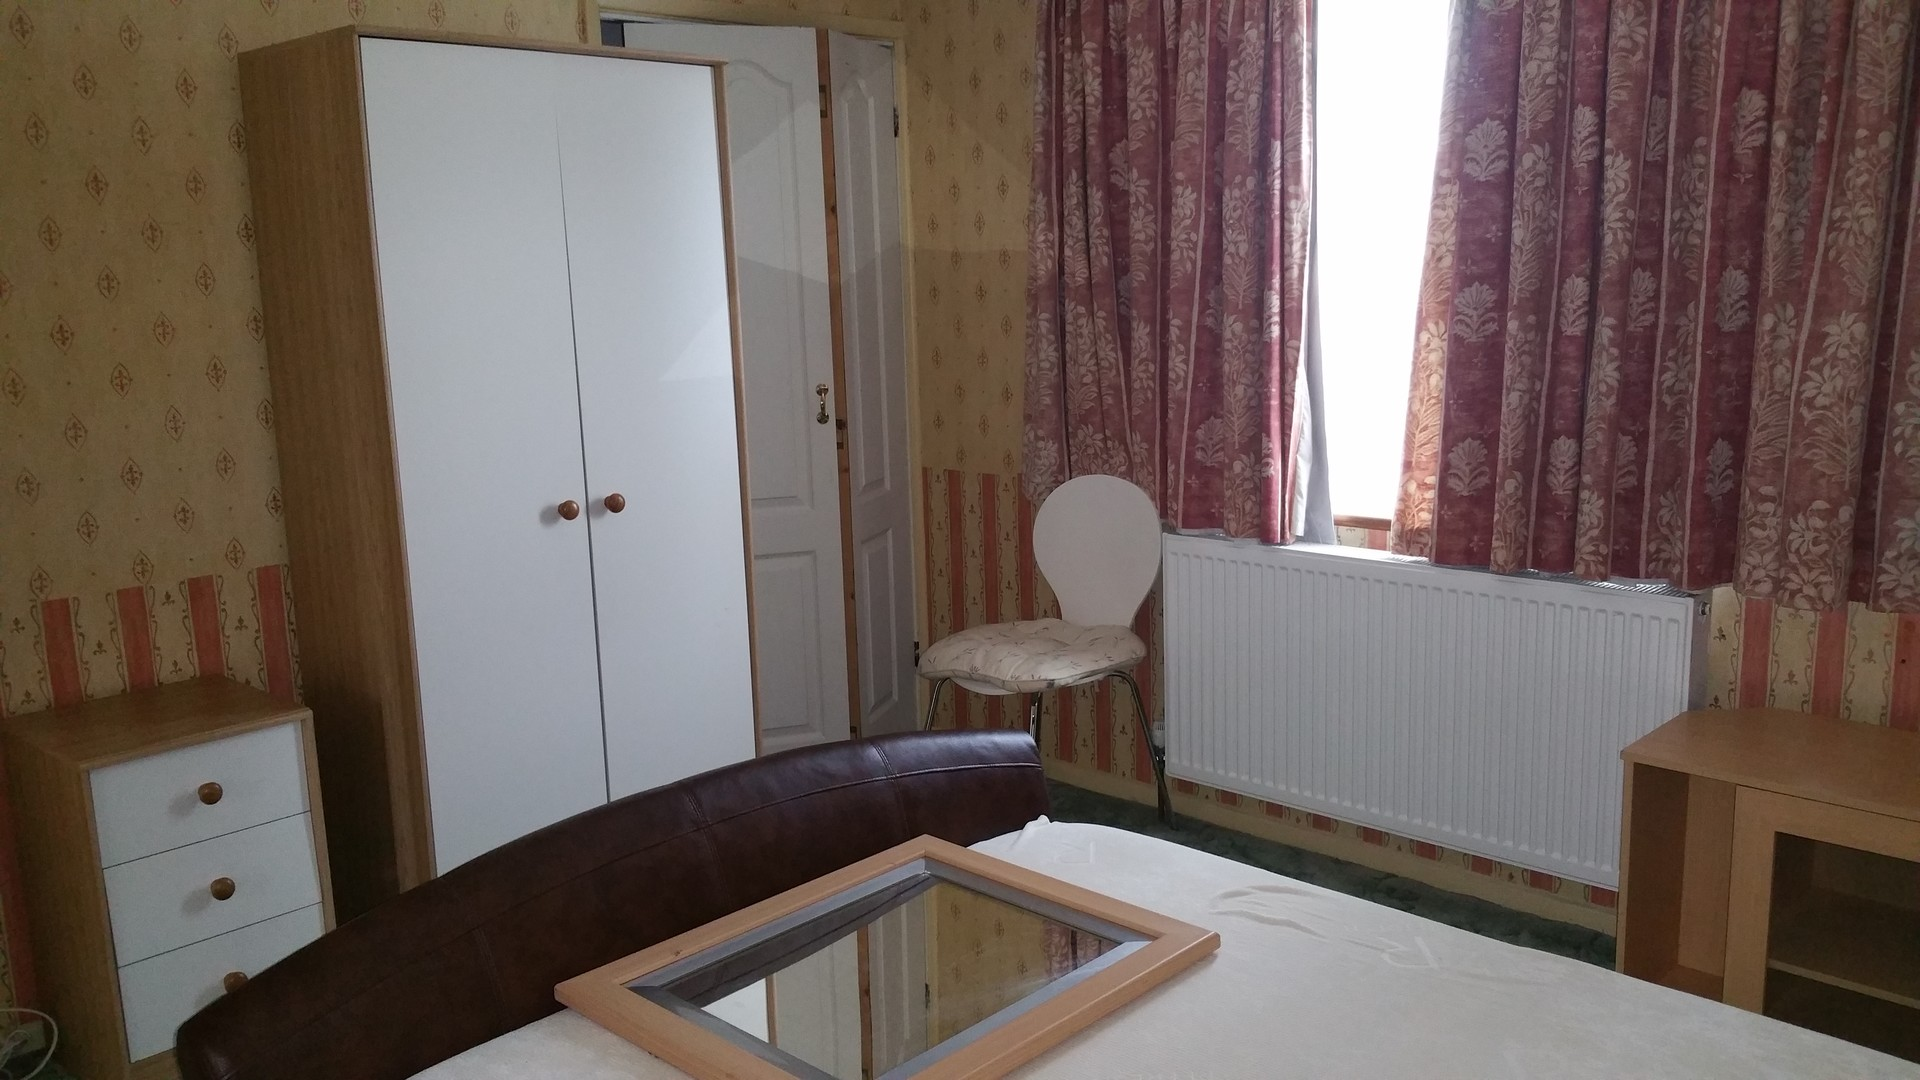 2 Double rooms in good condition